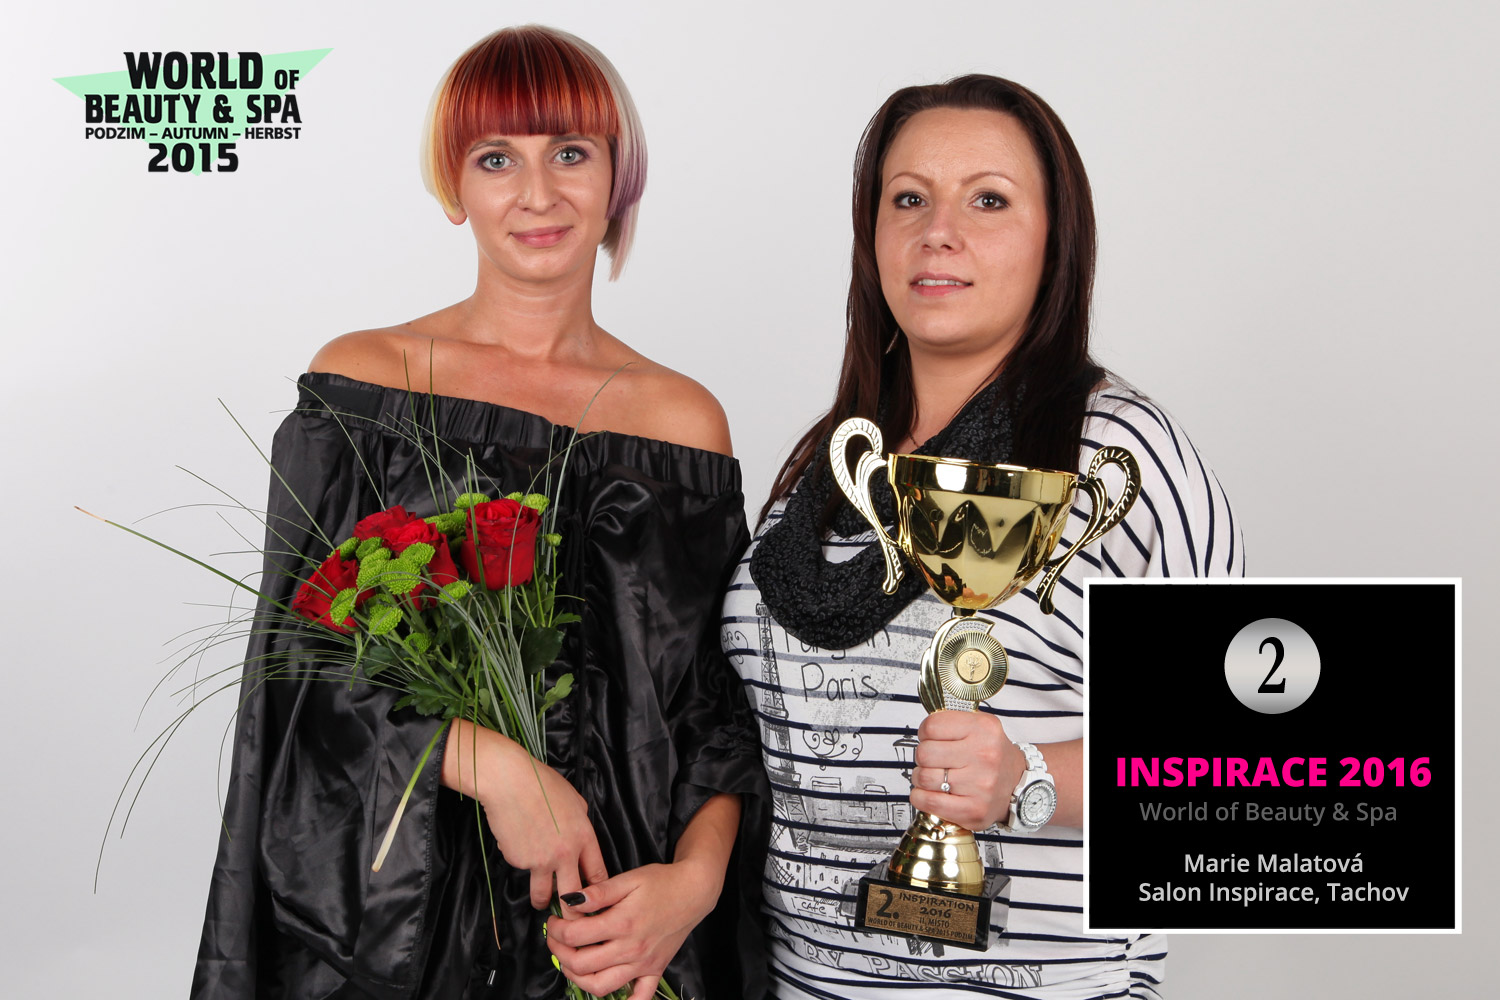 World of Beauty & Spa – Inspiration 2016: 2nd place Marie Malatova, Salon Inspirace, Tachov